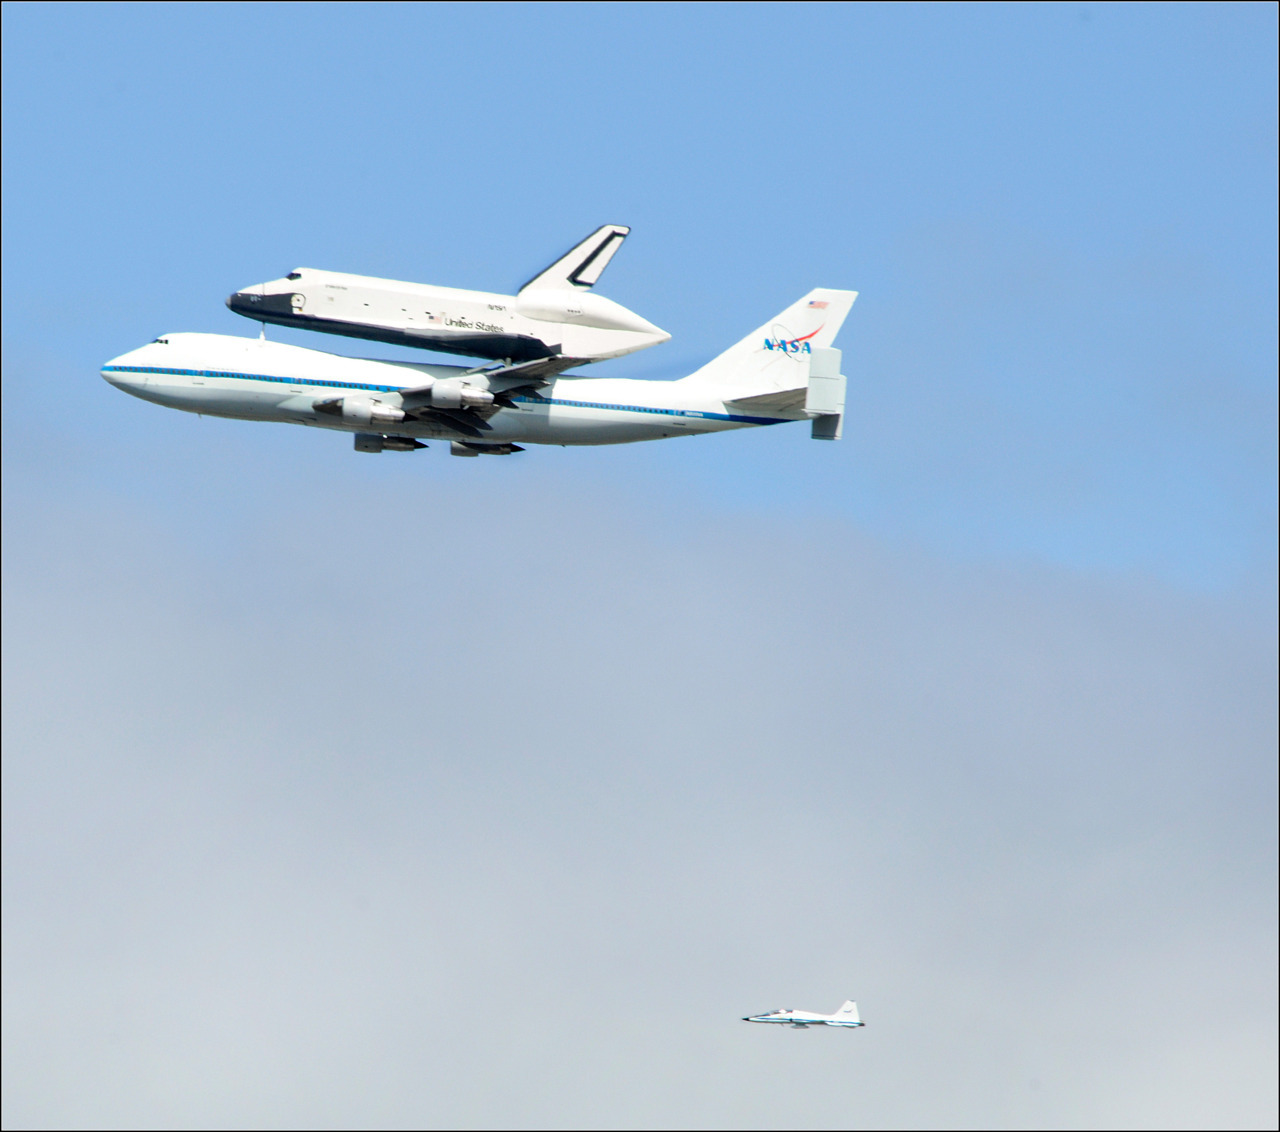 amnhnyc:  We spotted NASA's Space Shuttle Enterprise as it passed by the Museum this morning! This is the view from our rooftop. Photo by Rod.